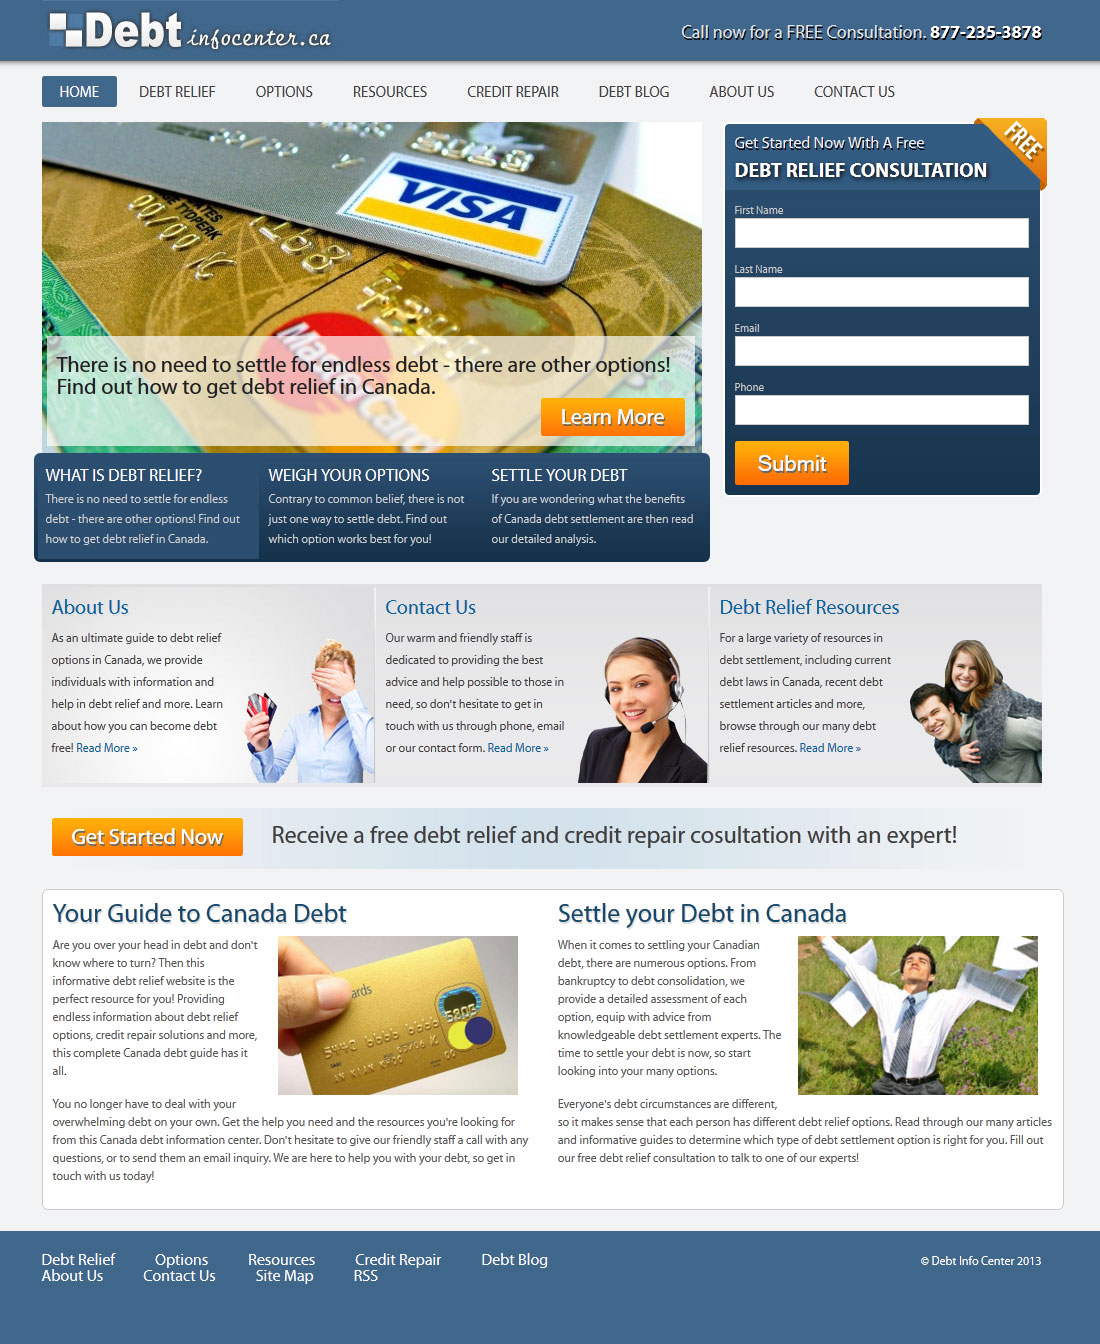 DebtInfoCenter.ca Website Design & Development